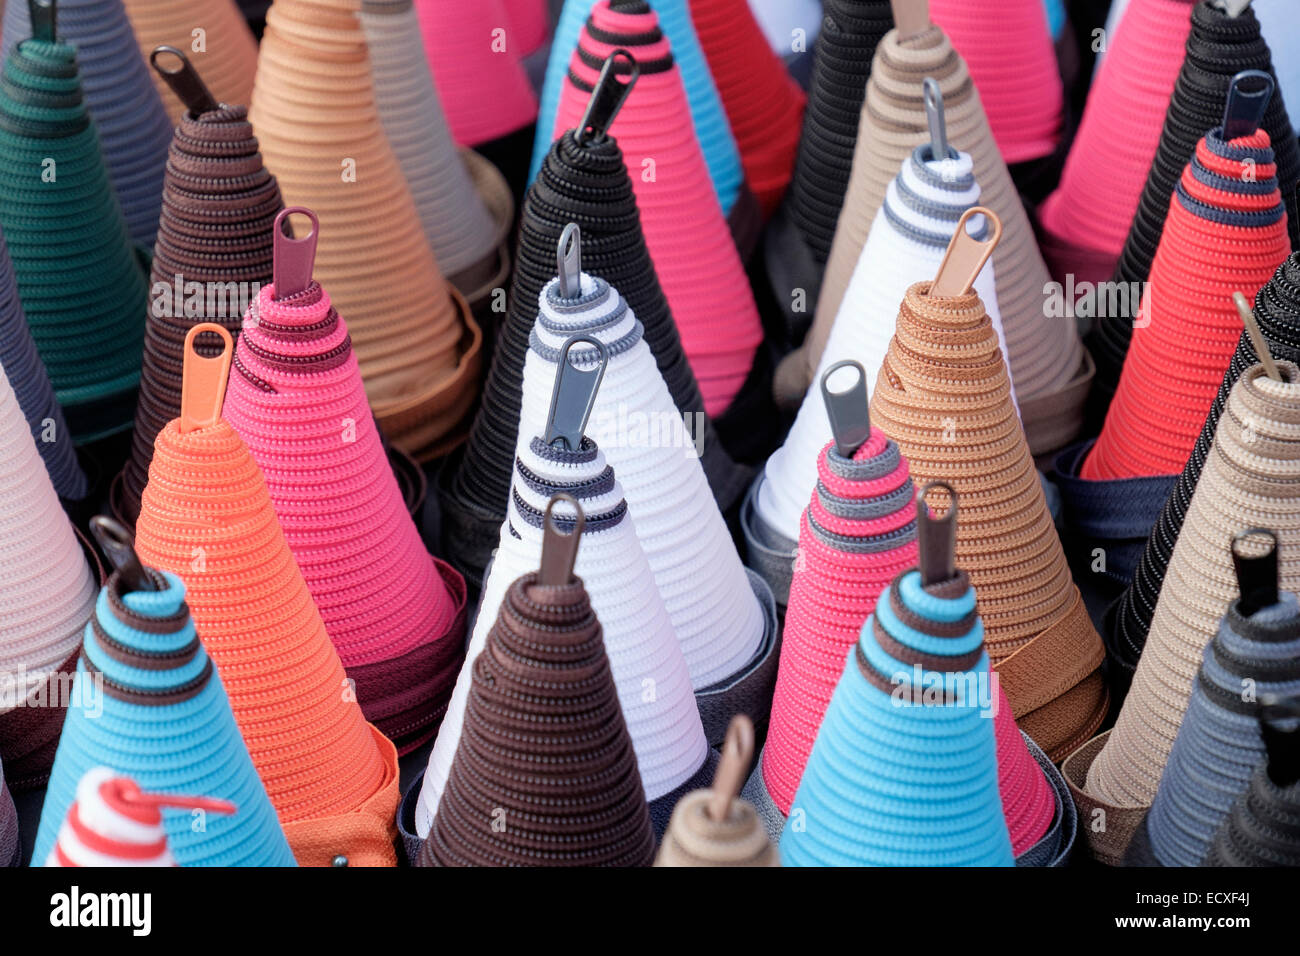 Lots of colourful zippers coiled into cone shaped spirals for sale on a market stall. France, Europe - Stock Image